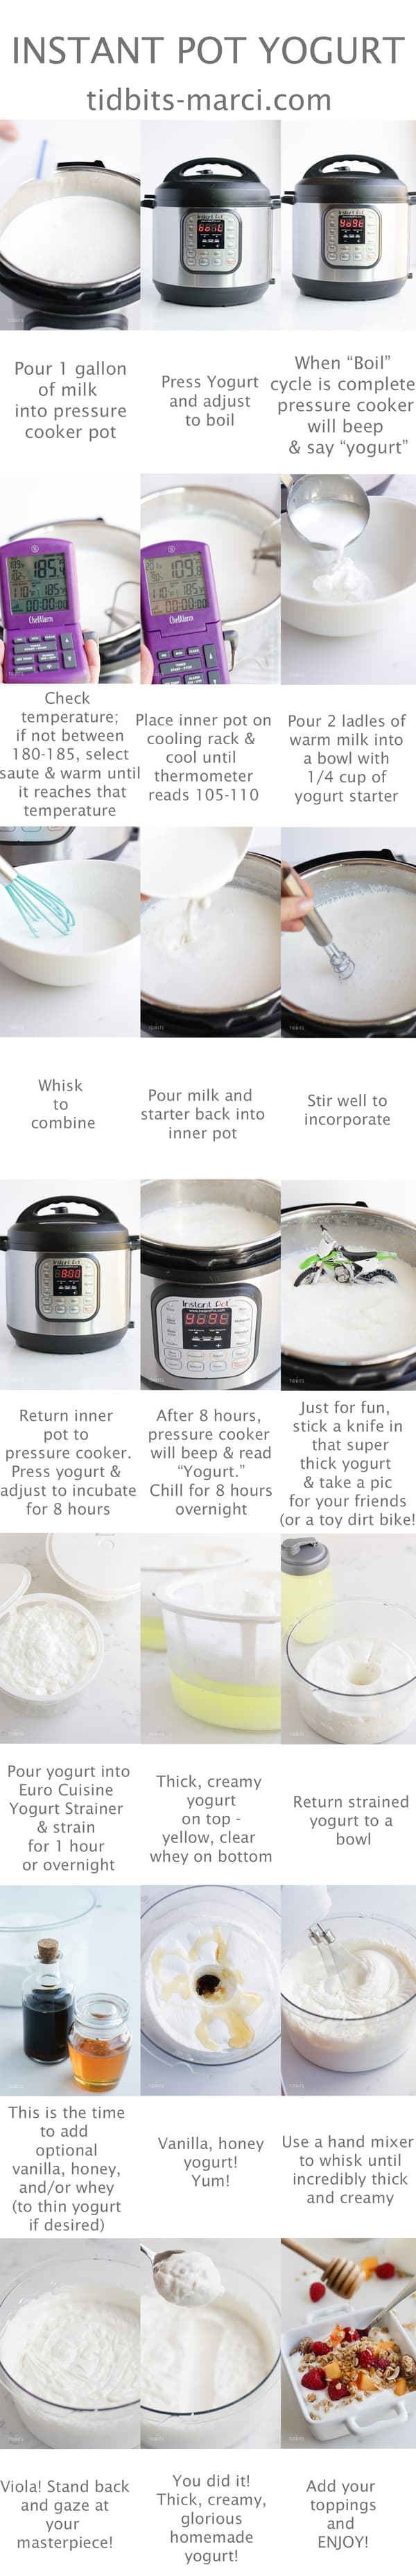 instant pot yogurt step by step collage